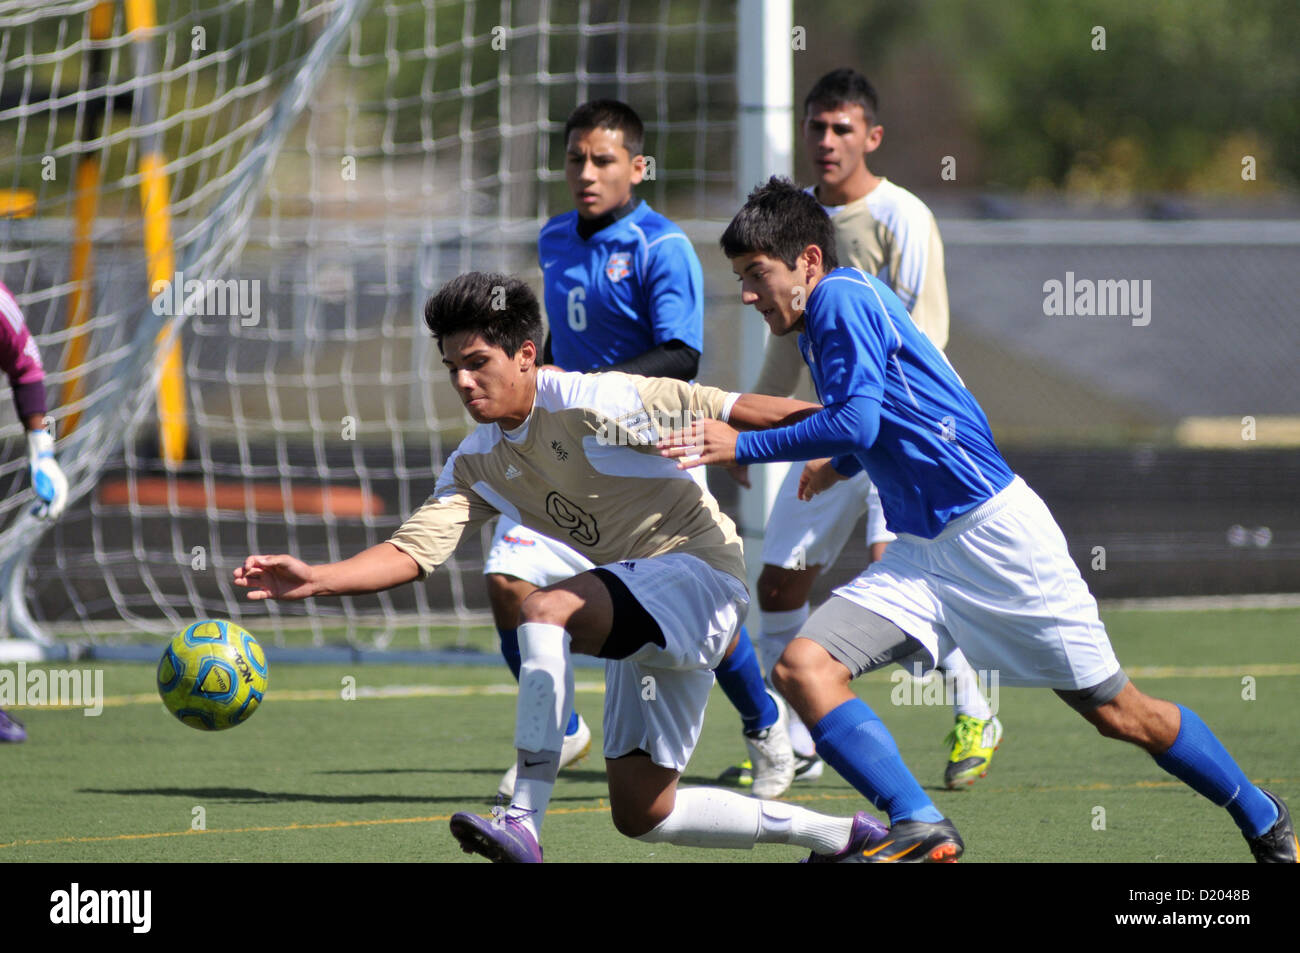 Soccer off-balance striker battles a defender as they scramble to control the ball in front of the goal during a - Stock Image